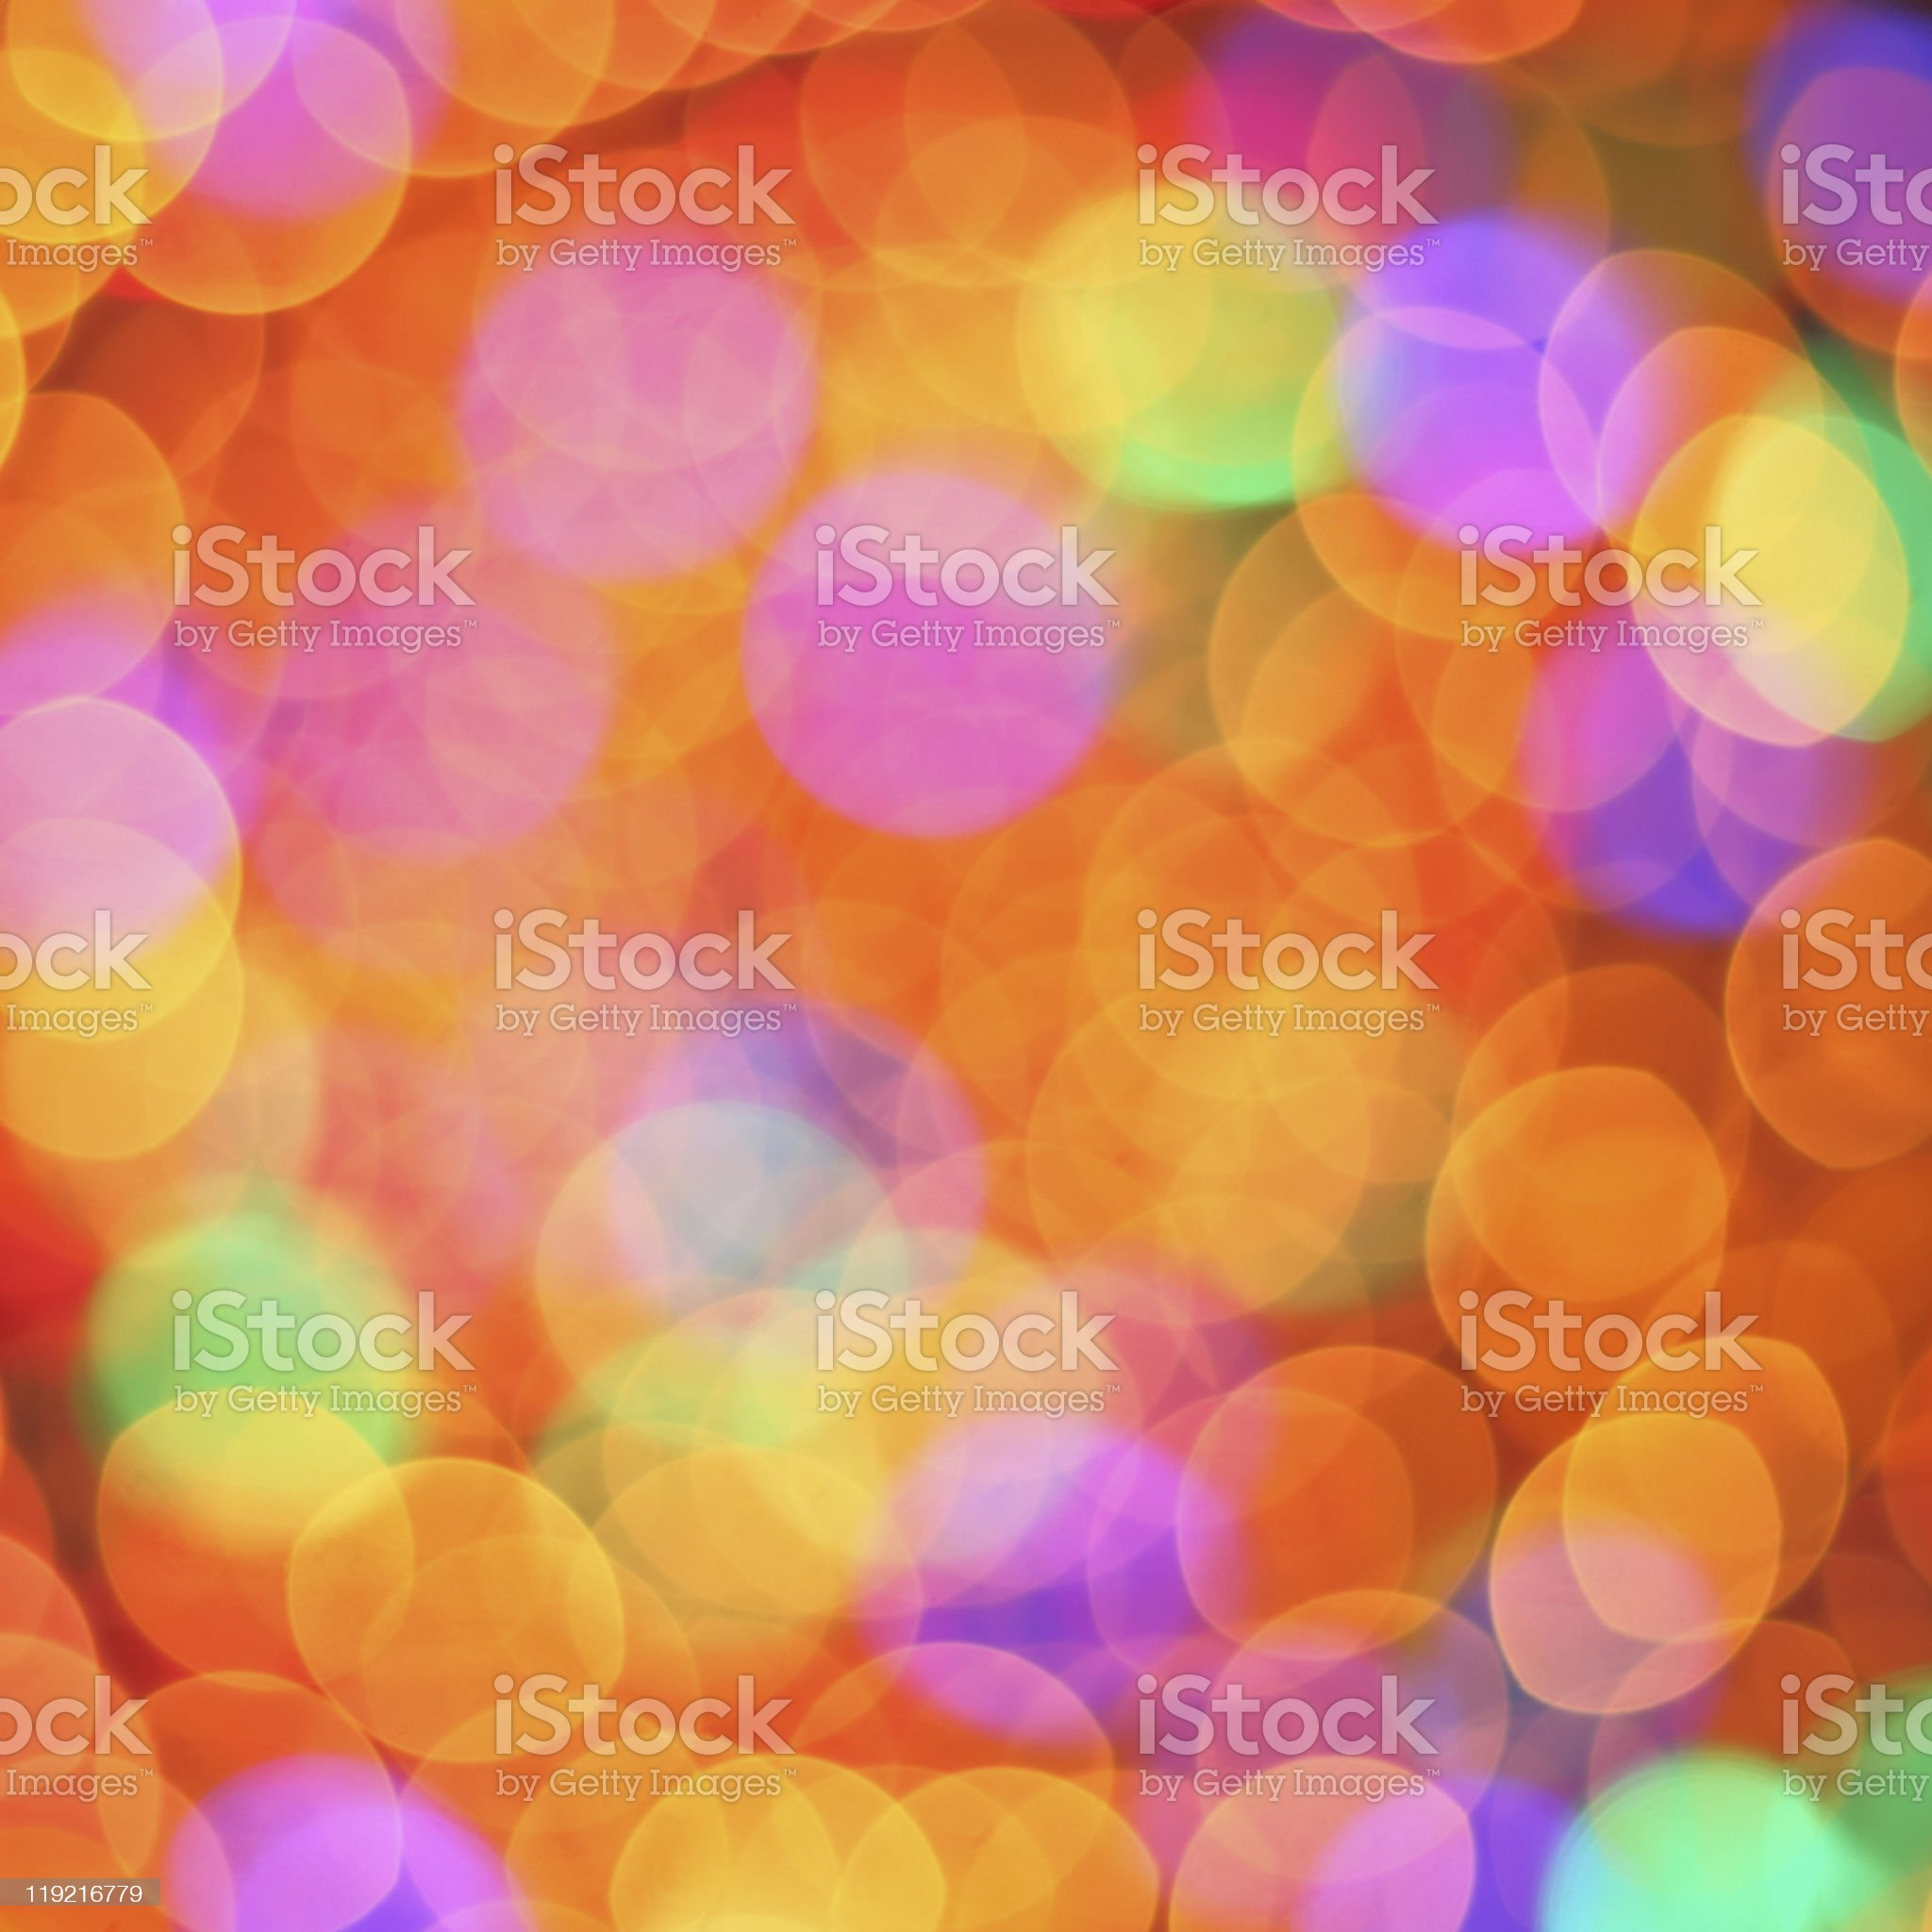 Abstract multi-colored bokeh photography royalty-free stock photo